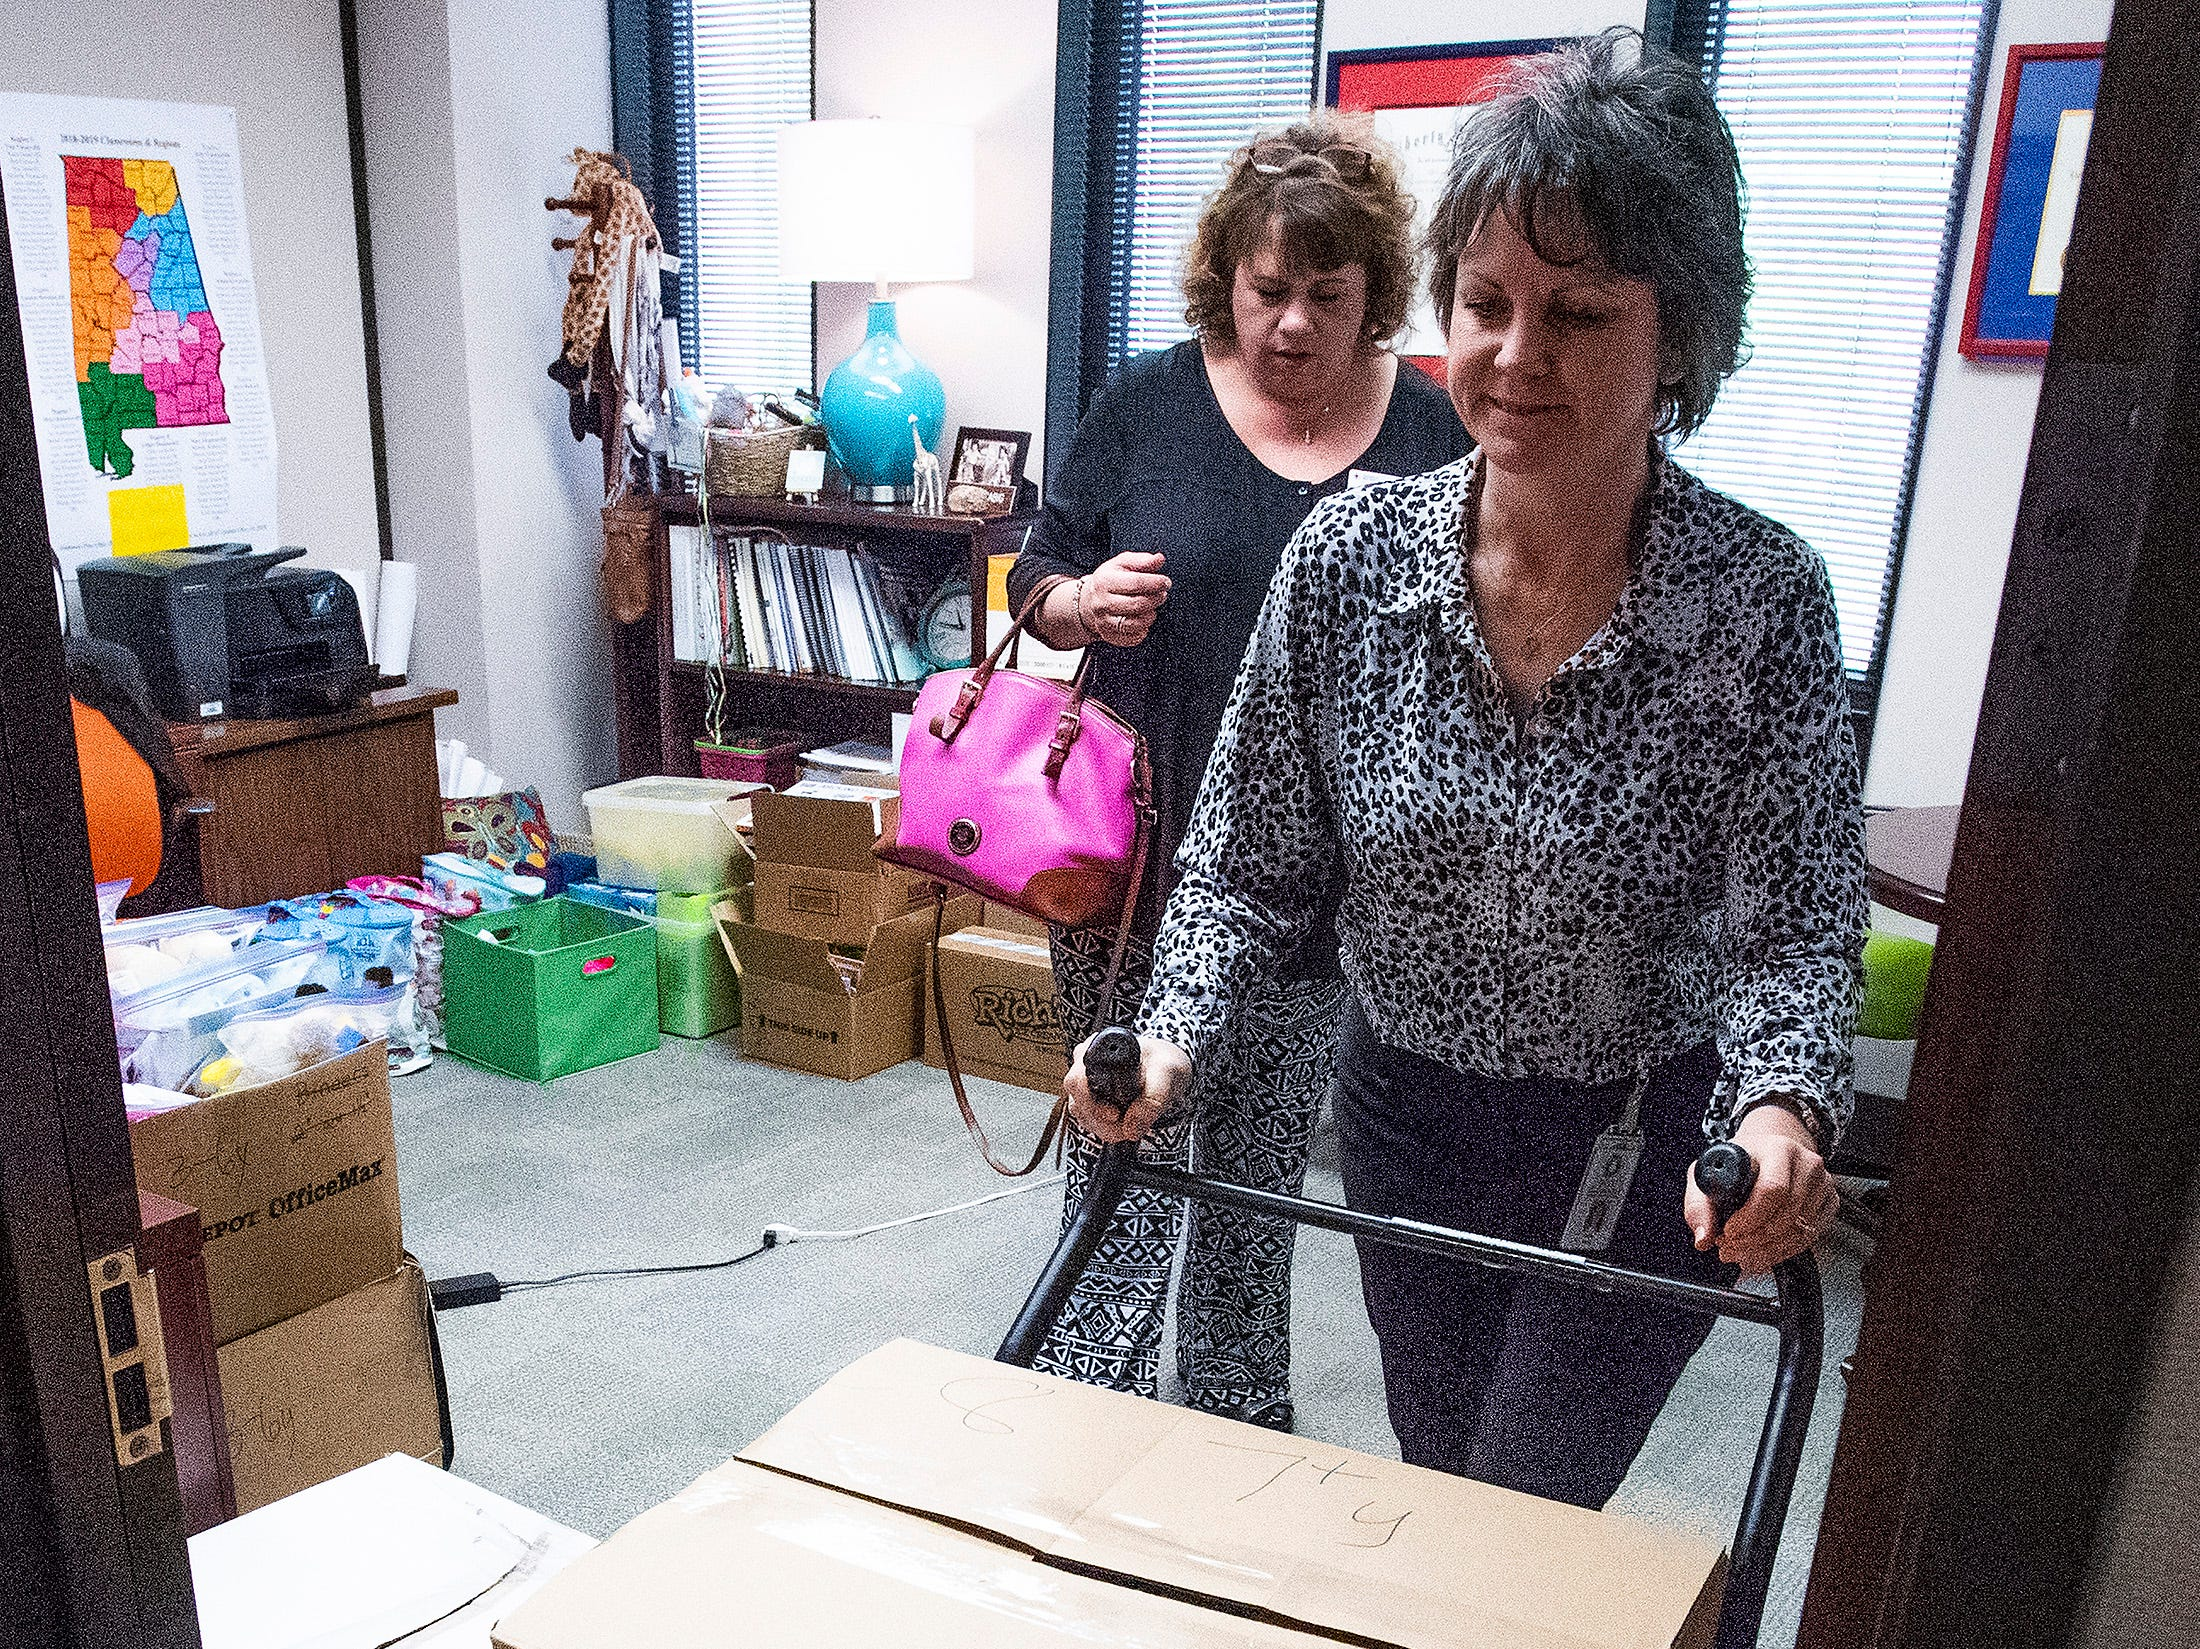 Dallas Rabig, of the Department of Early Childhood Education, right, gives child comfort kits to Kelly Hodges, of the Red Cross, on Wednesday March 13, 2019 in Montgomery, Ala., to be distributed to children in the wake of the Lee County tornados.